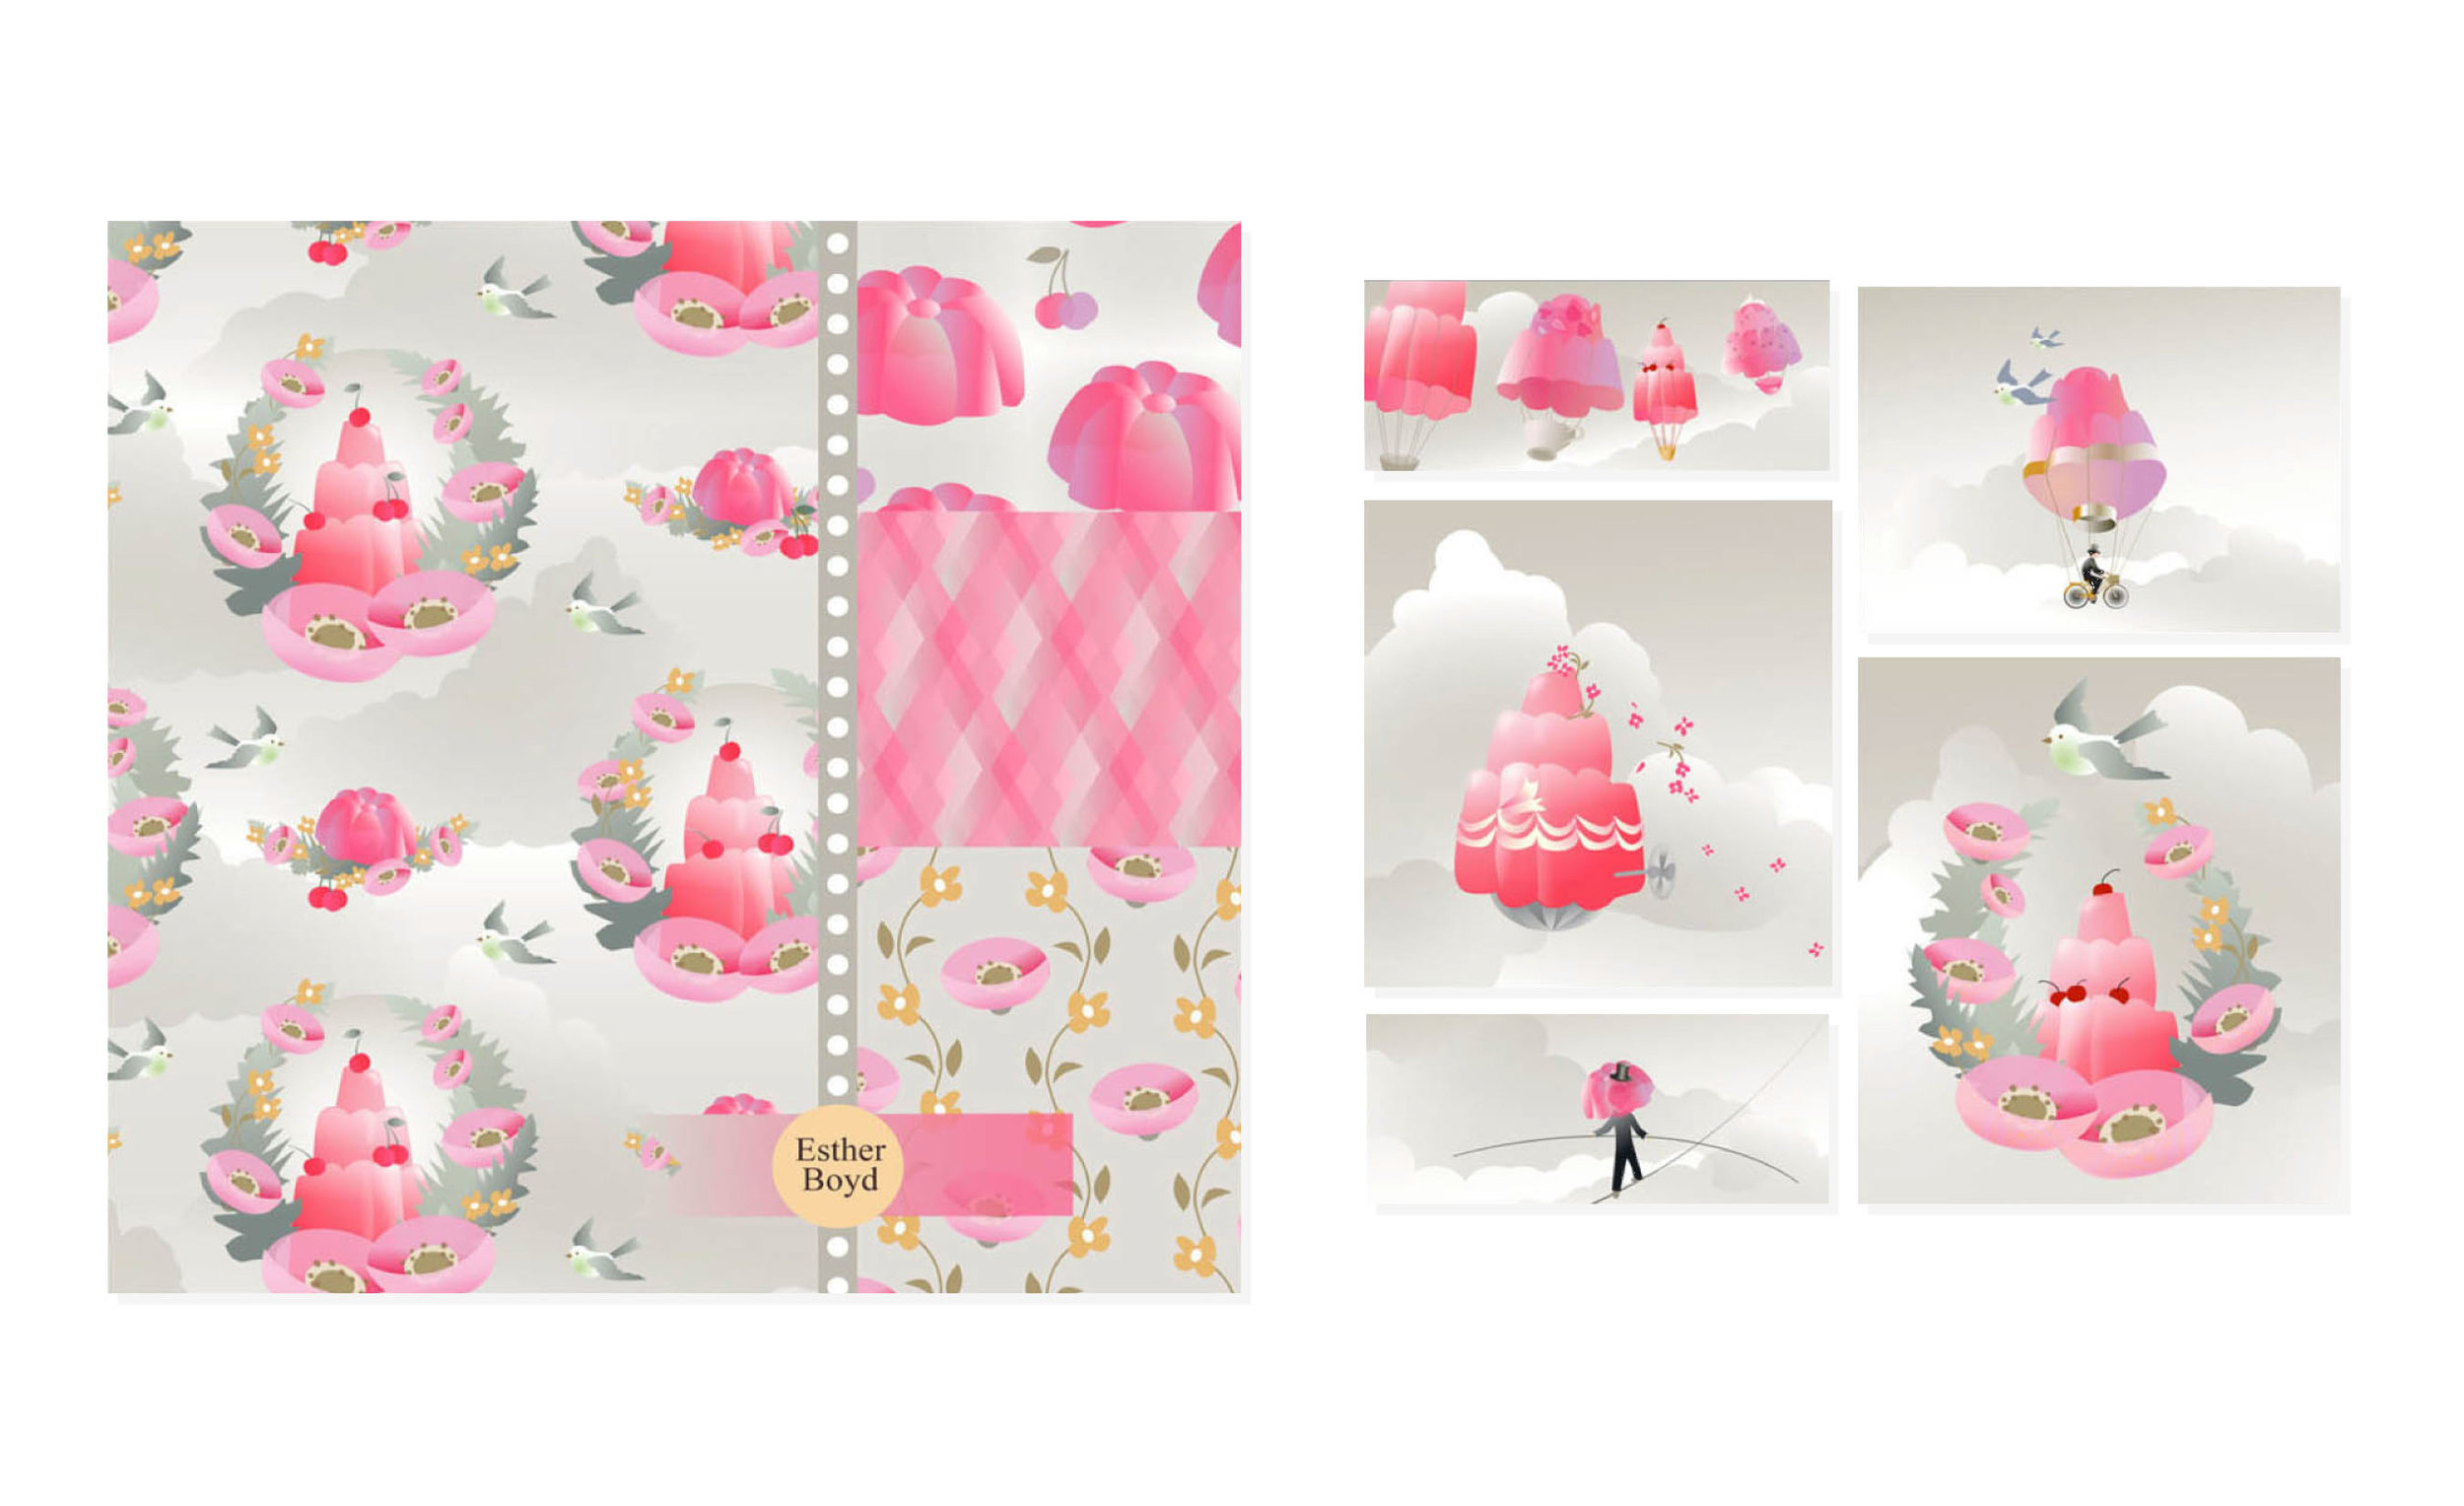 jellies illustrations patterns.jpg